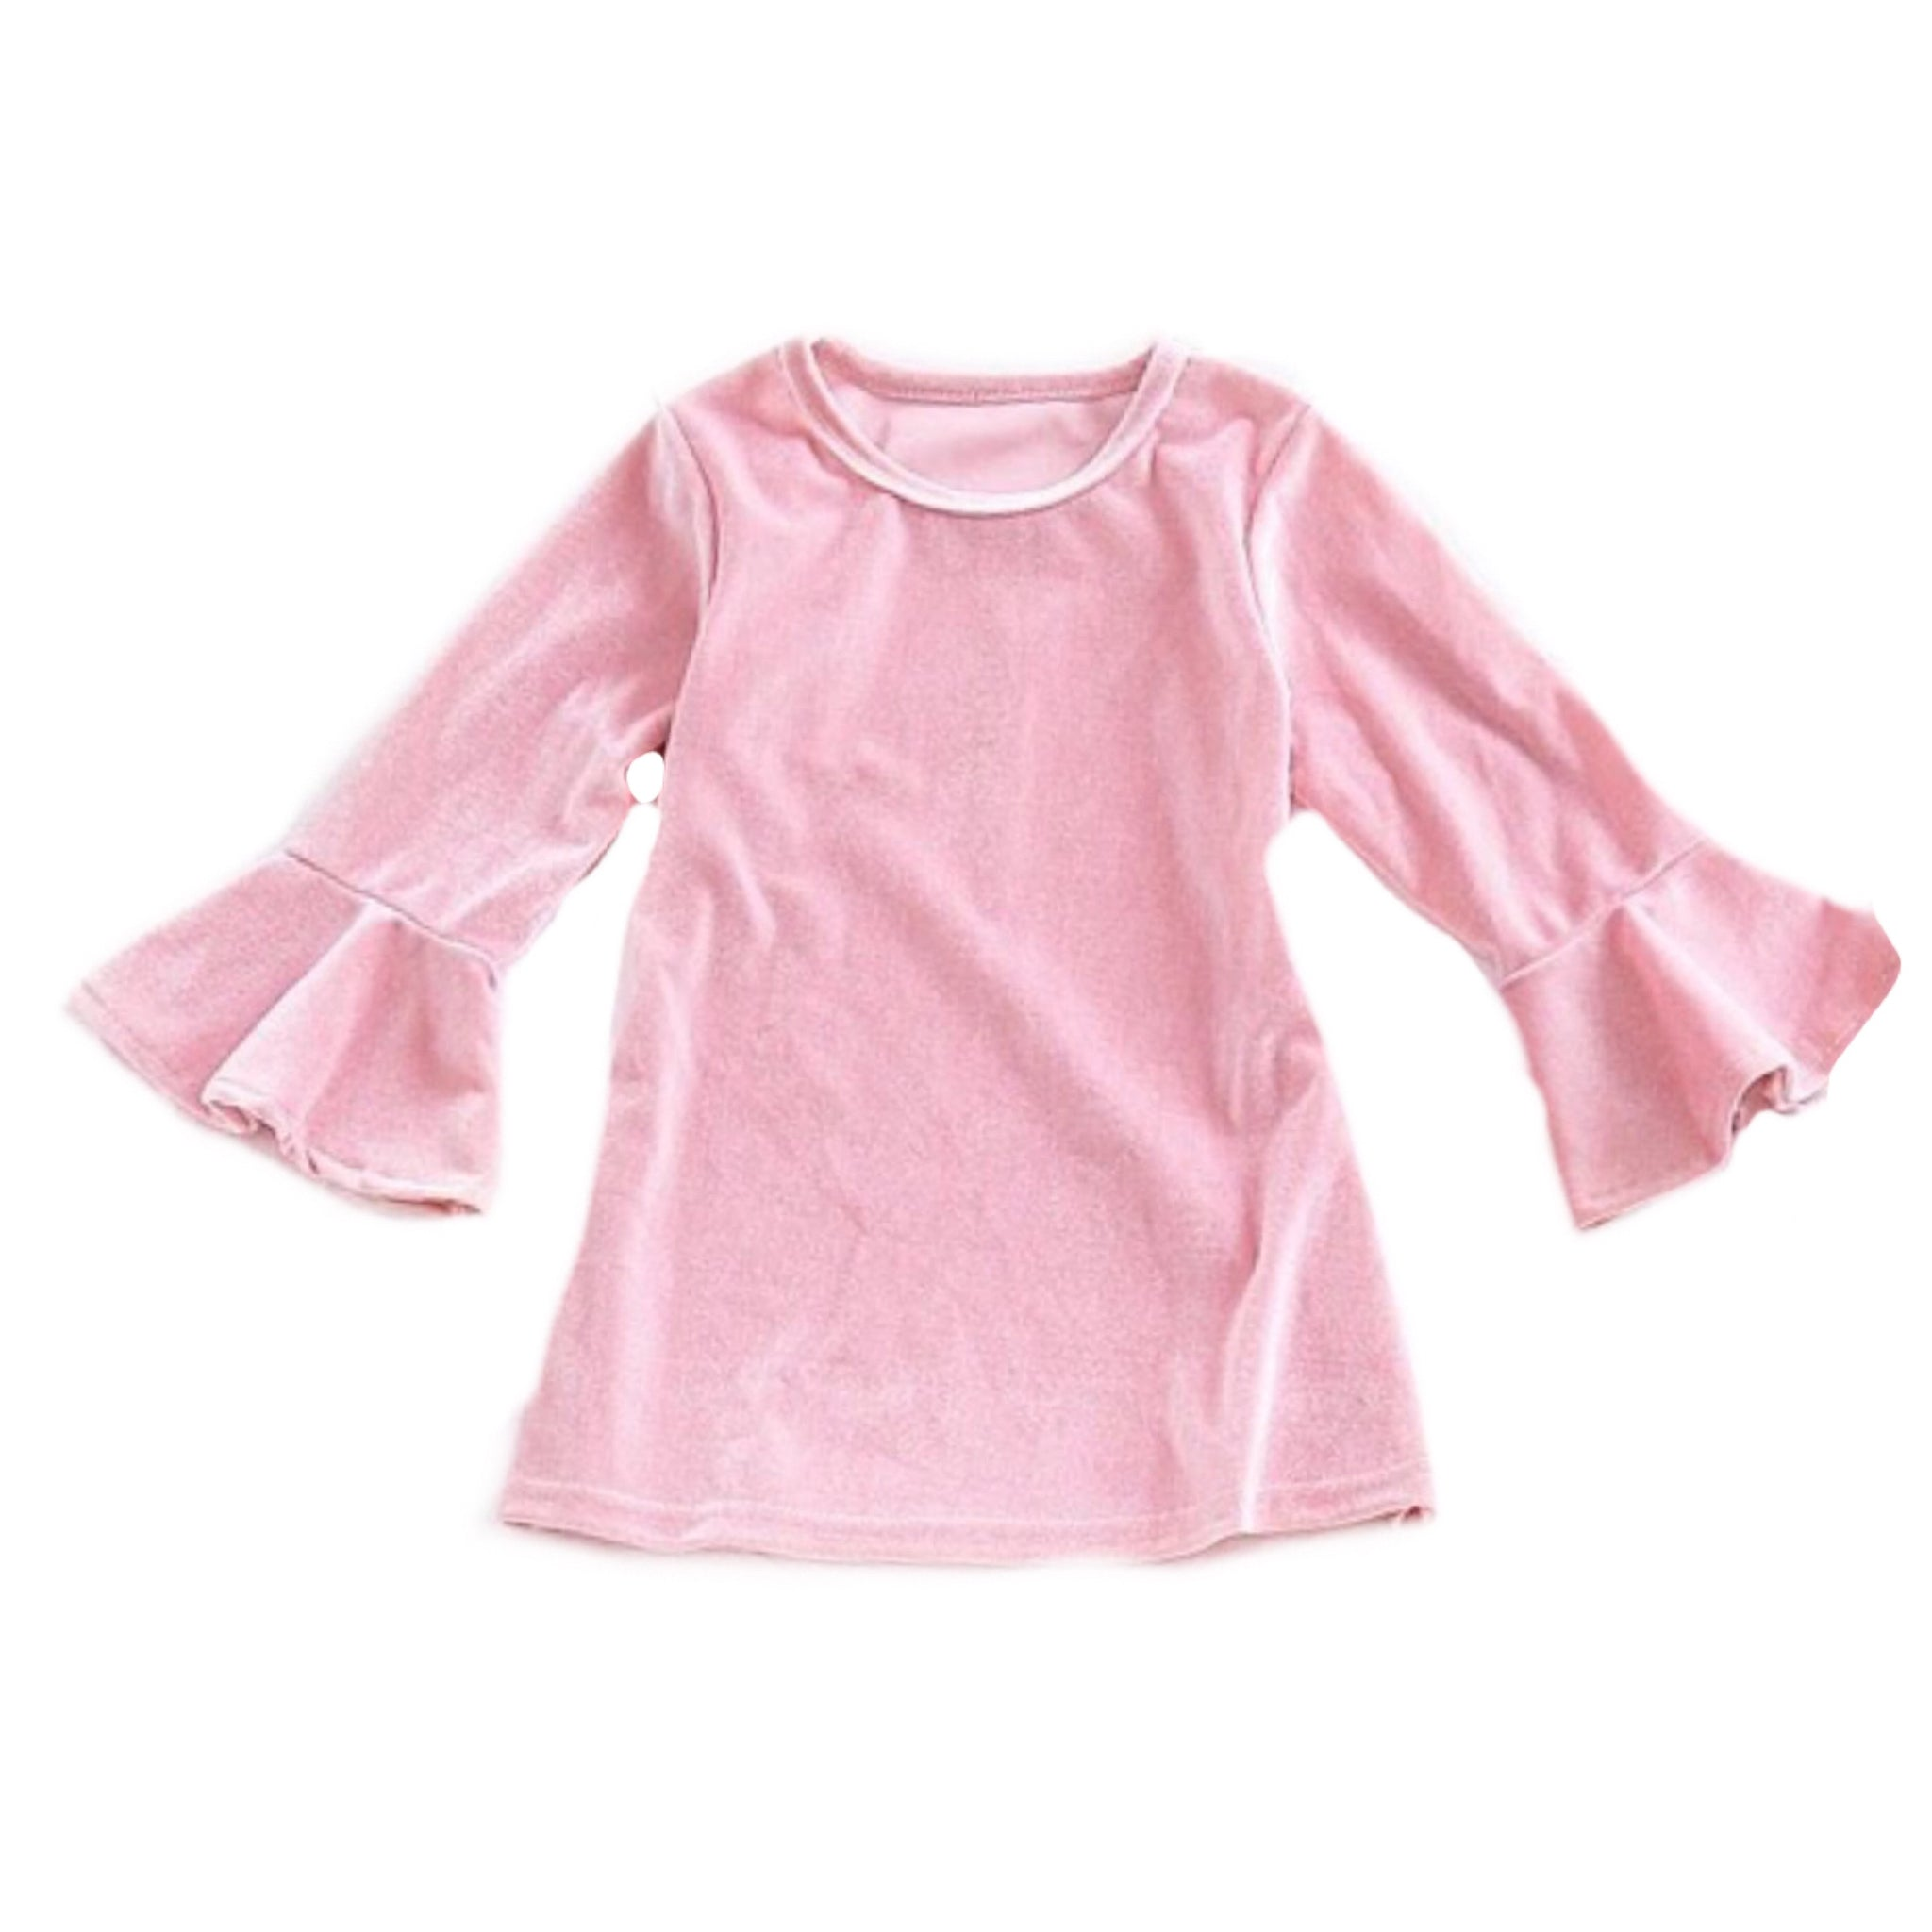 Noelle ~ Pink Soft Velveteen Dress